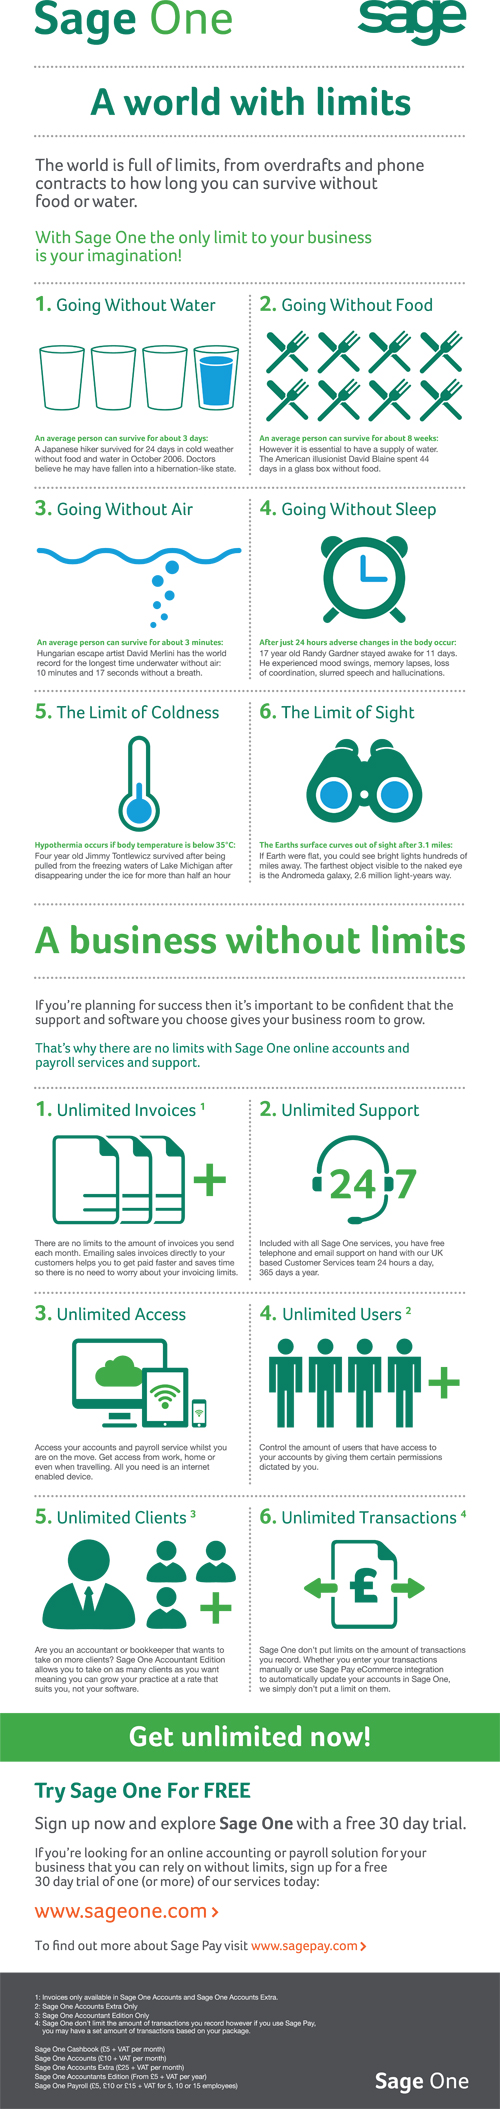 infographic-a-business-without-limits